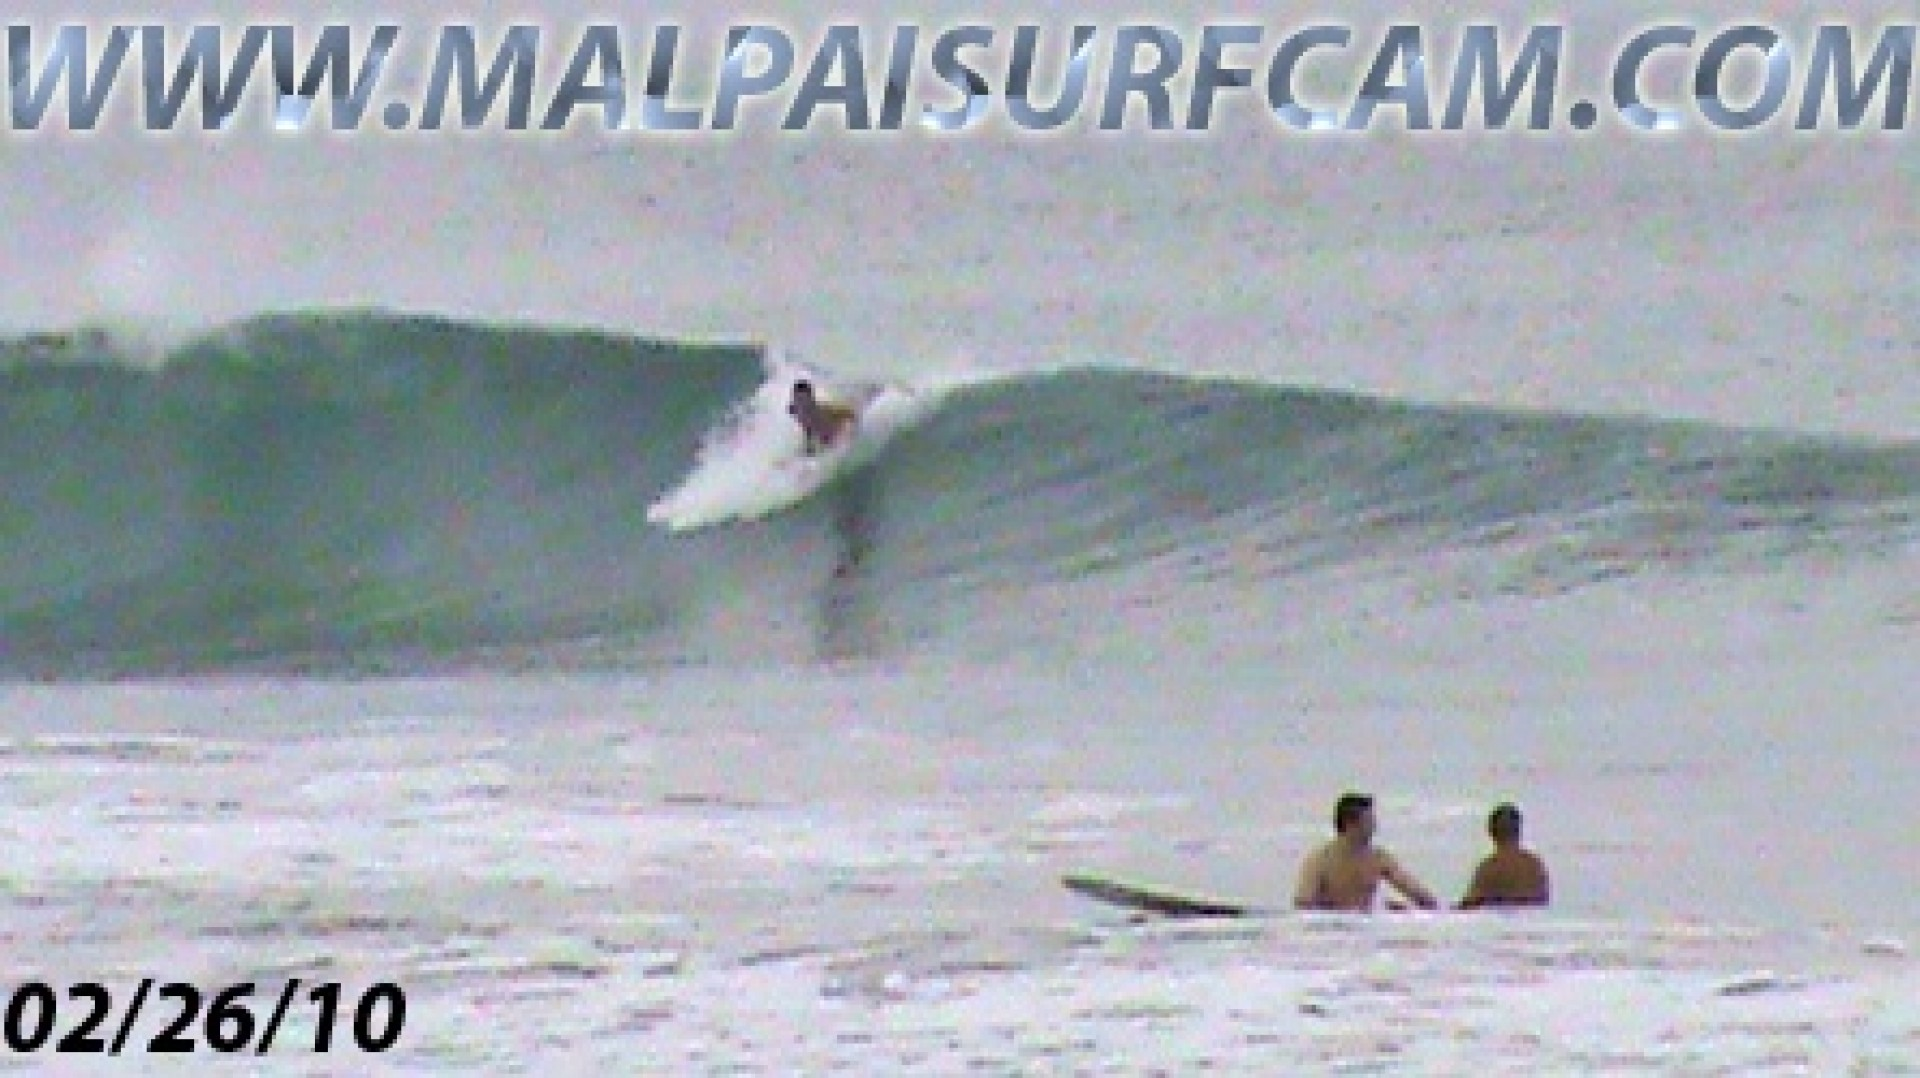 malpaisurfcam's photo of Playa Santa Teresa